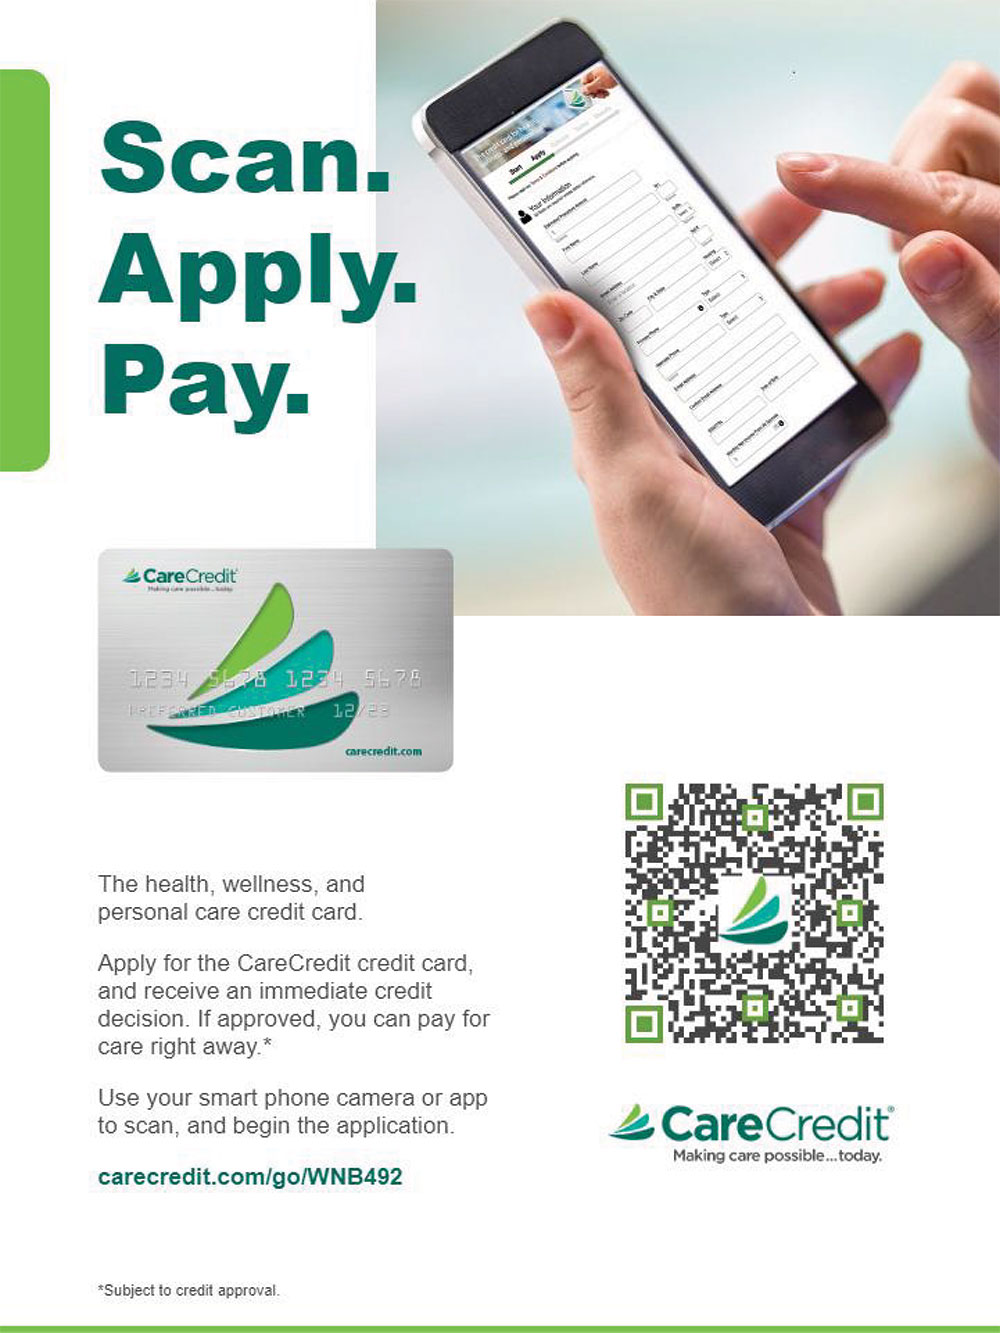 scan-apply-pay